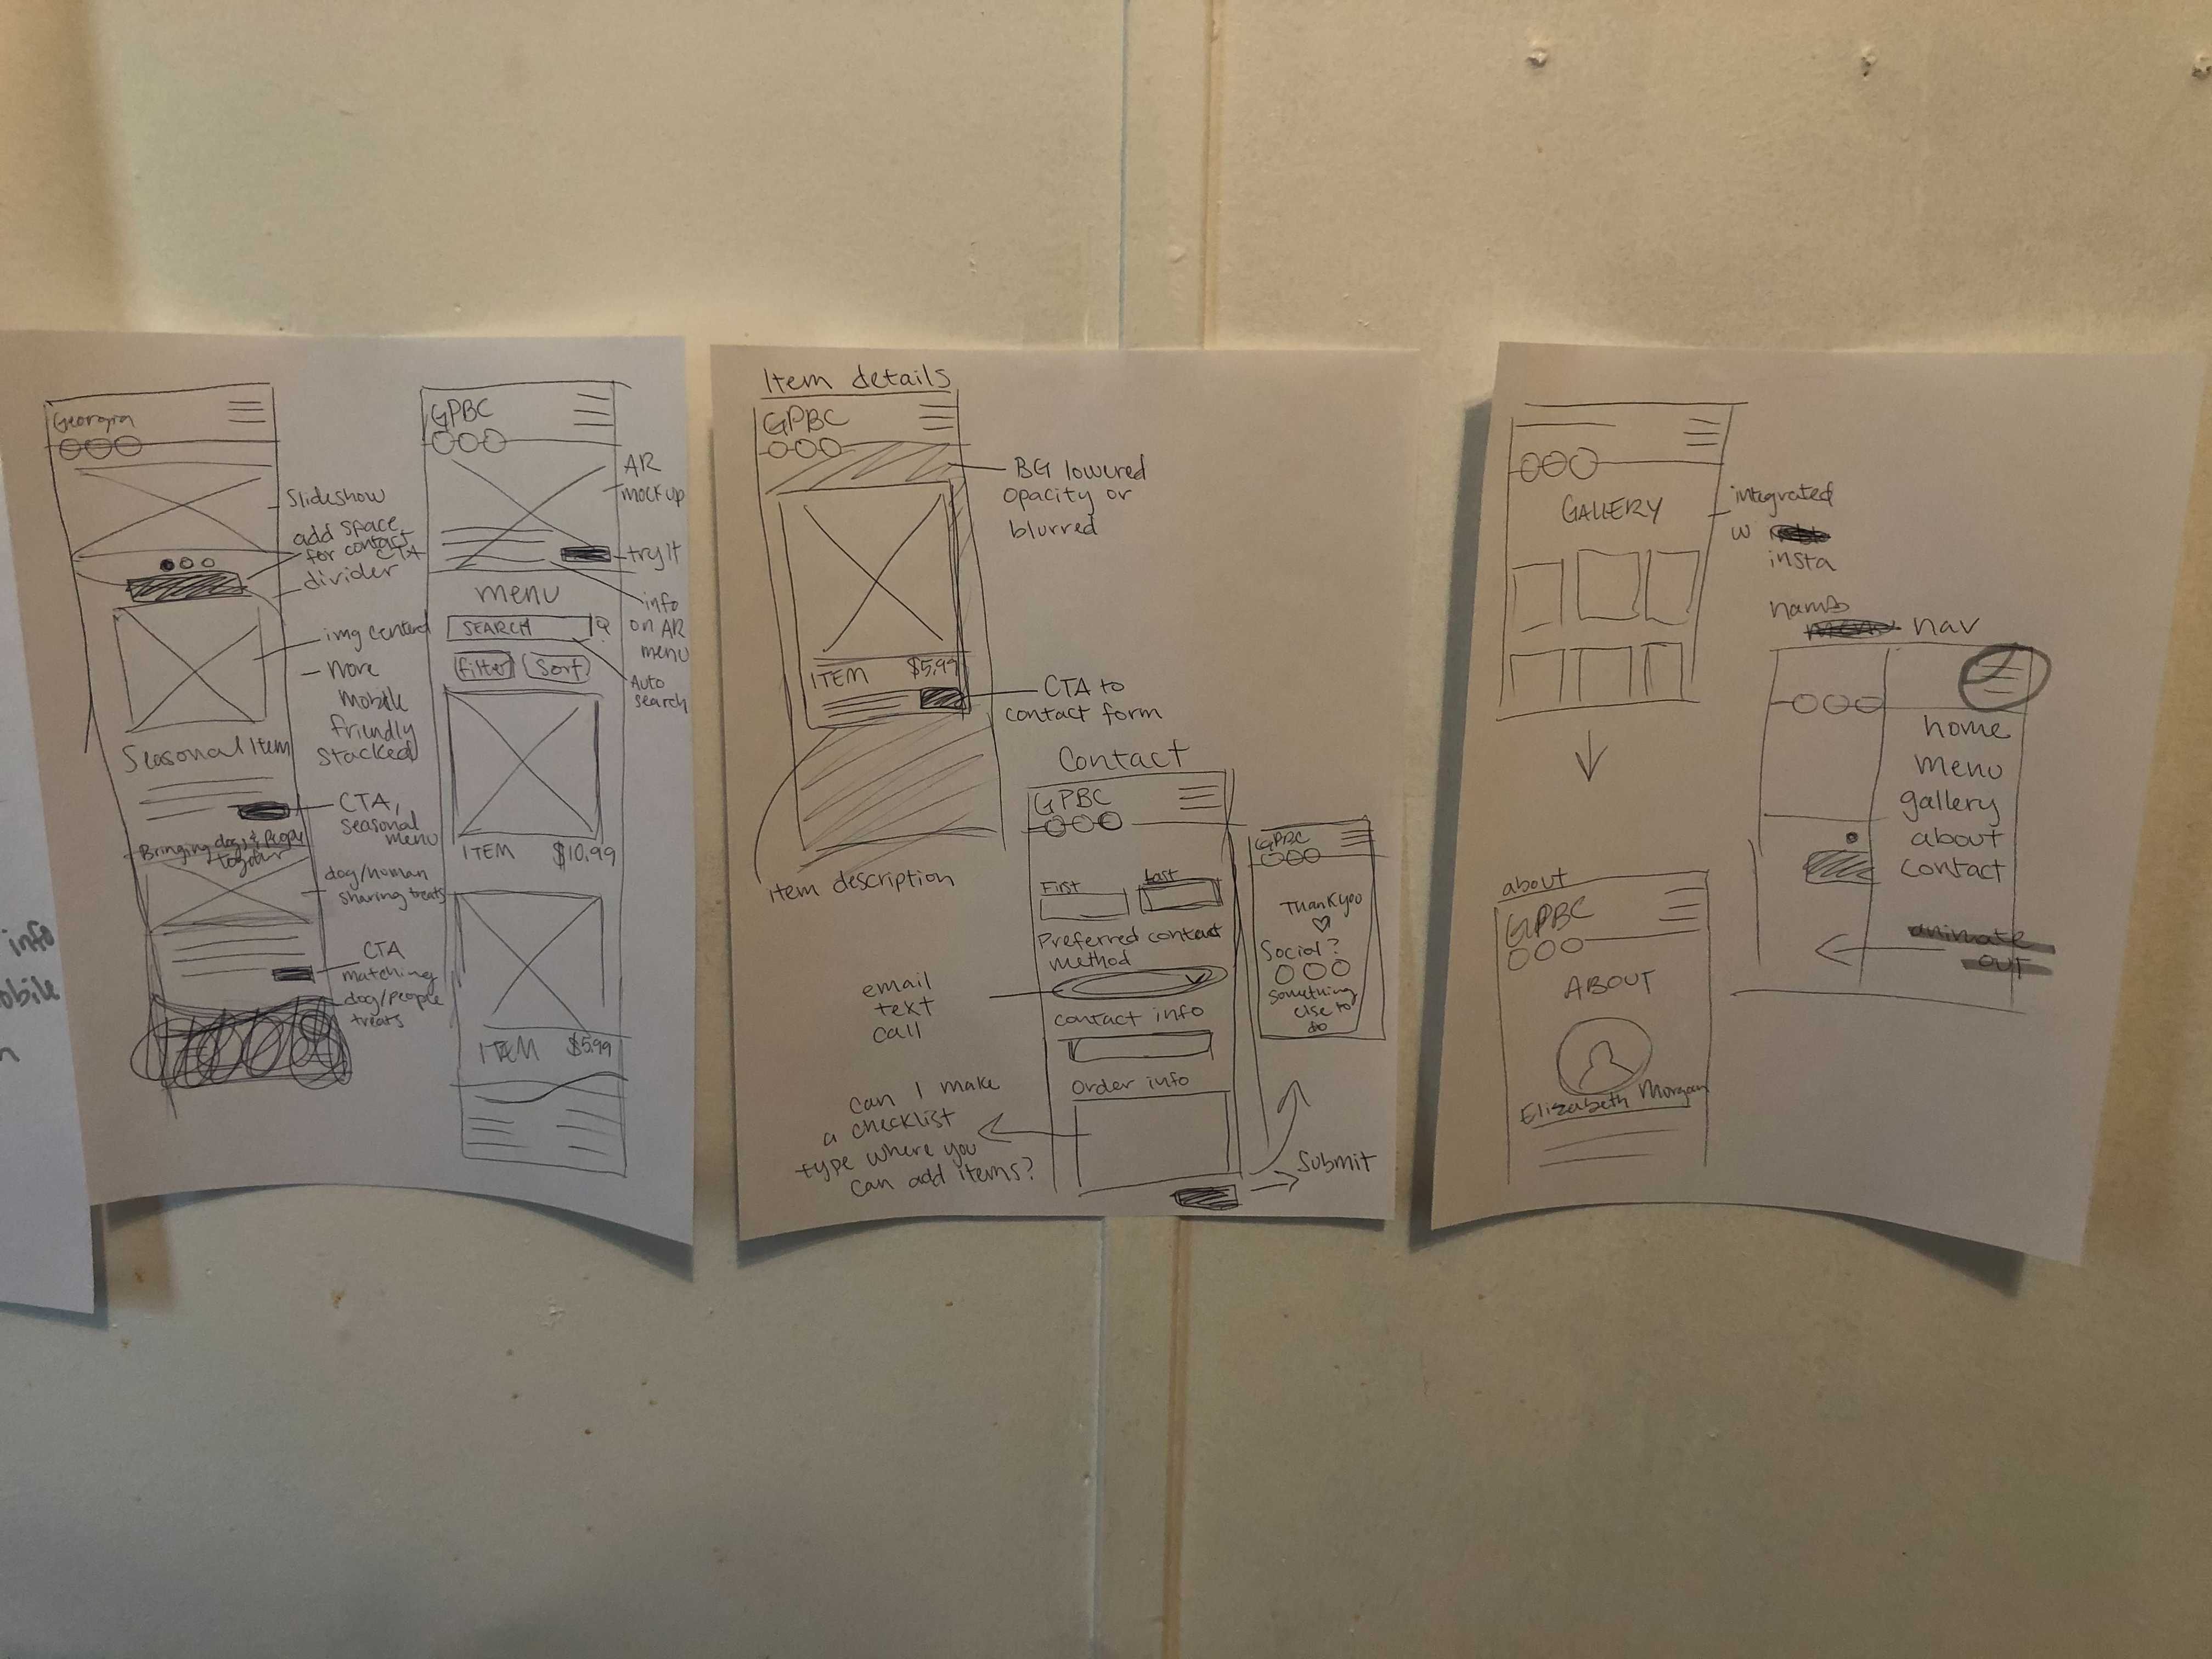 Three pieces of paper hanging on the wall, showing rough sketches of the site design